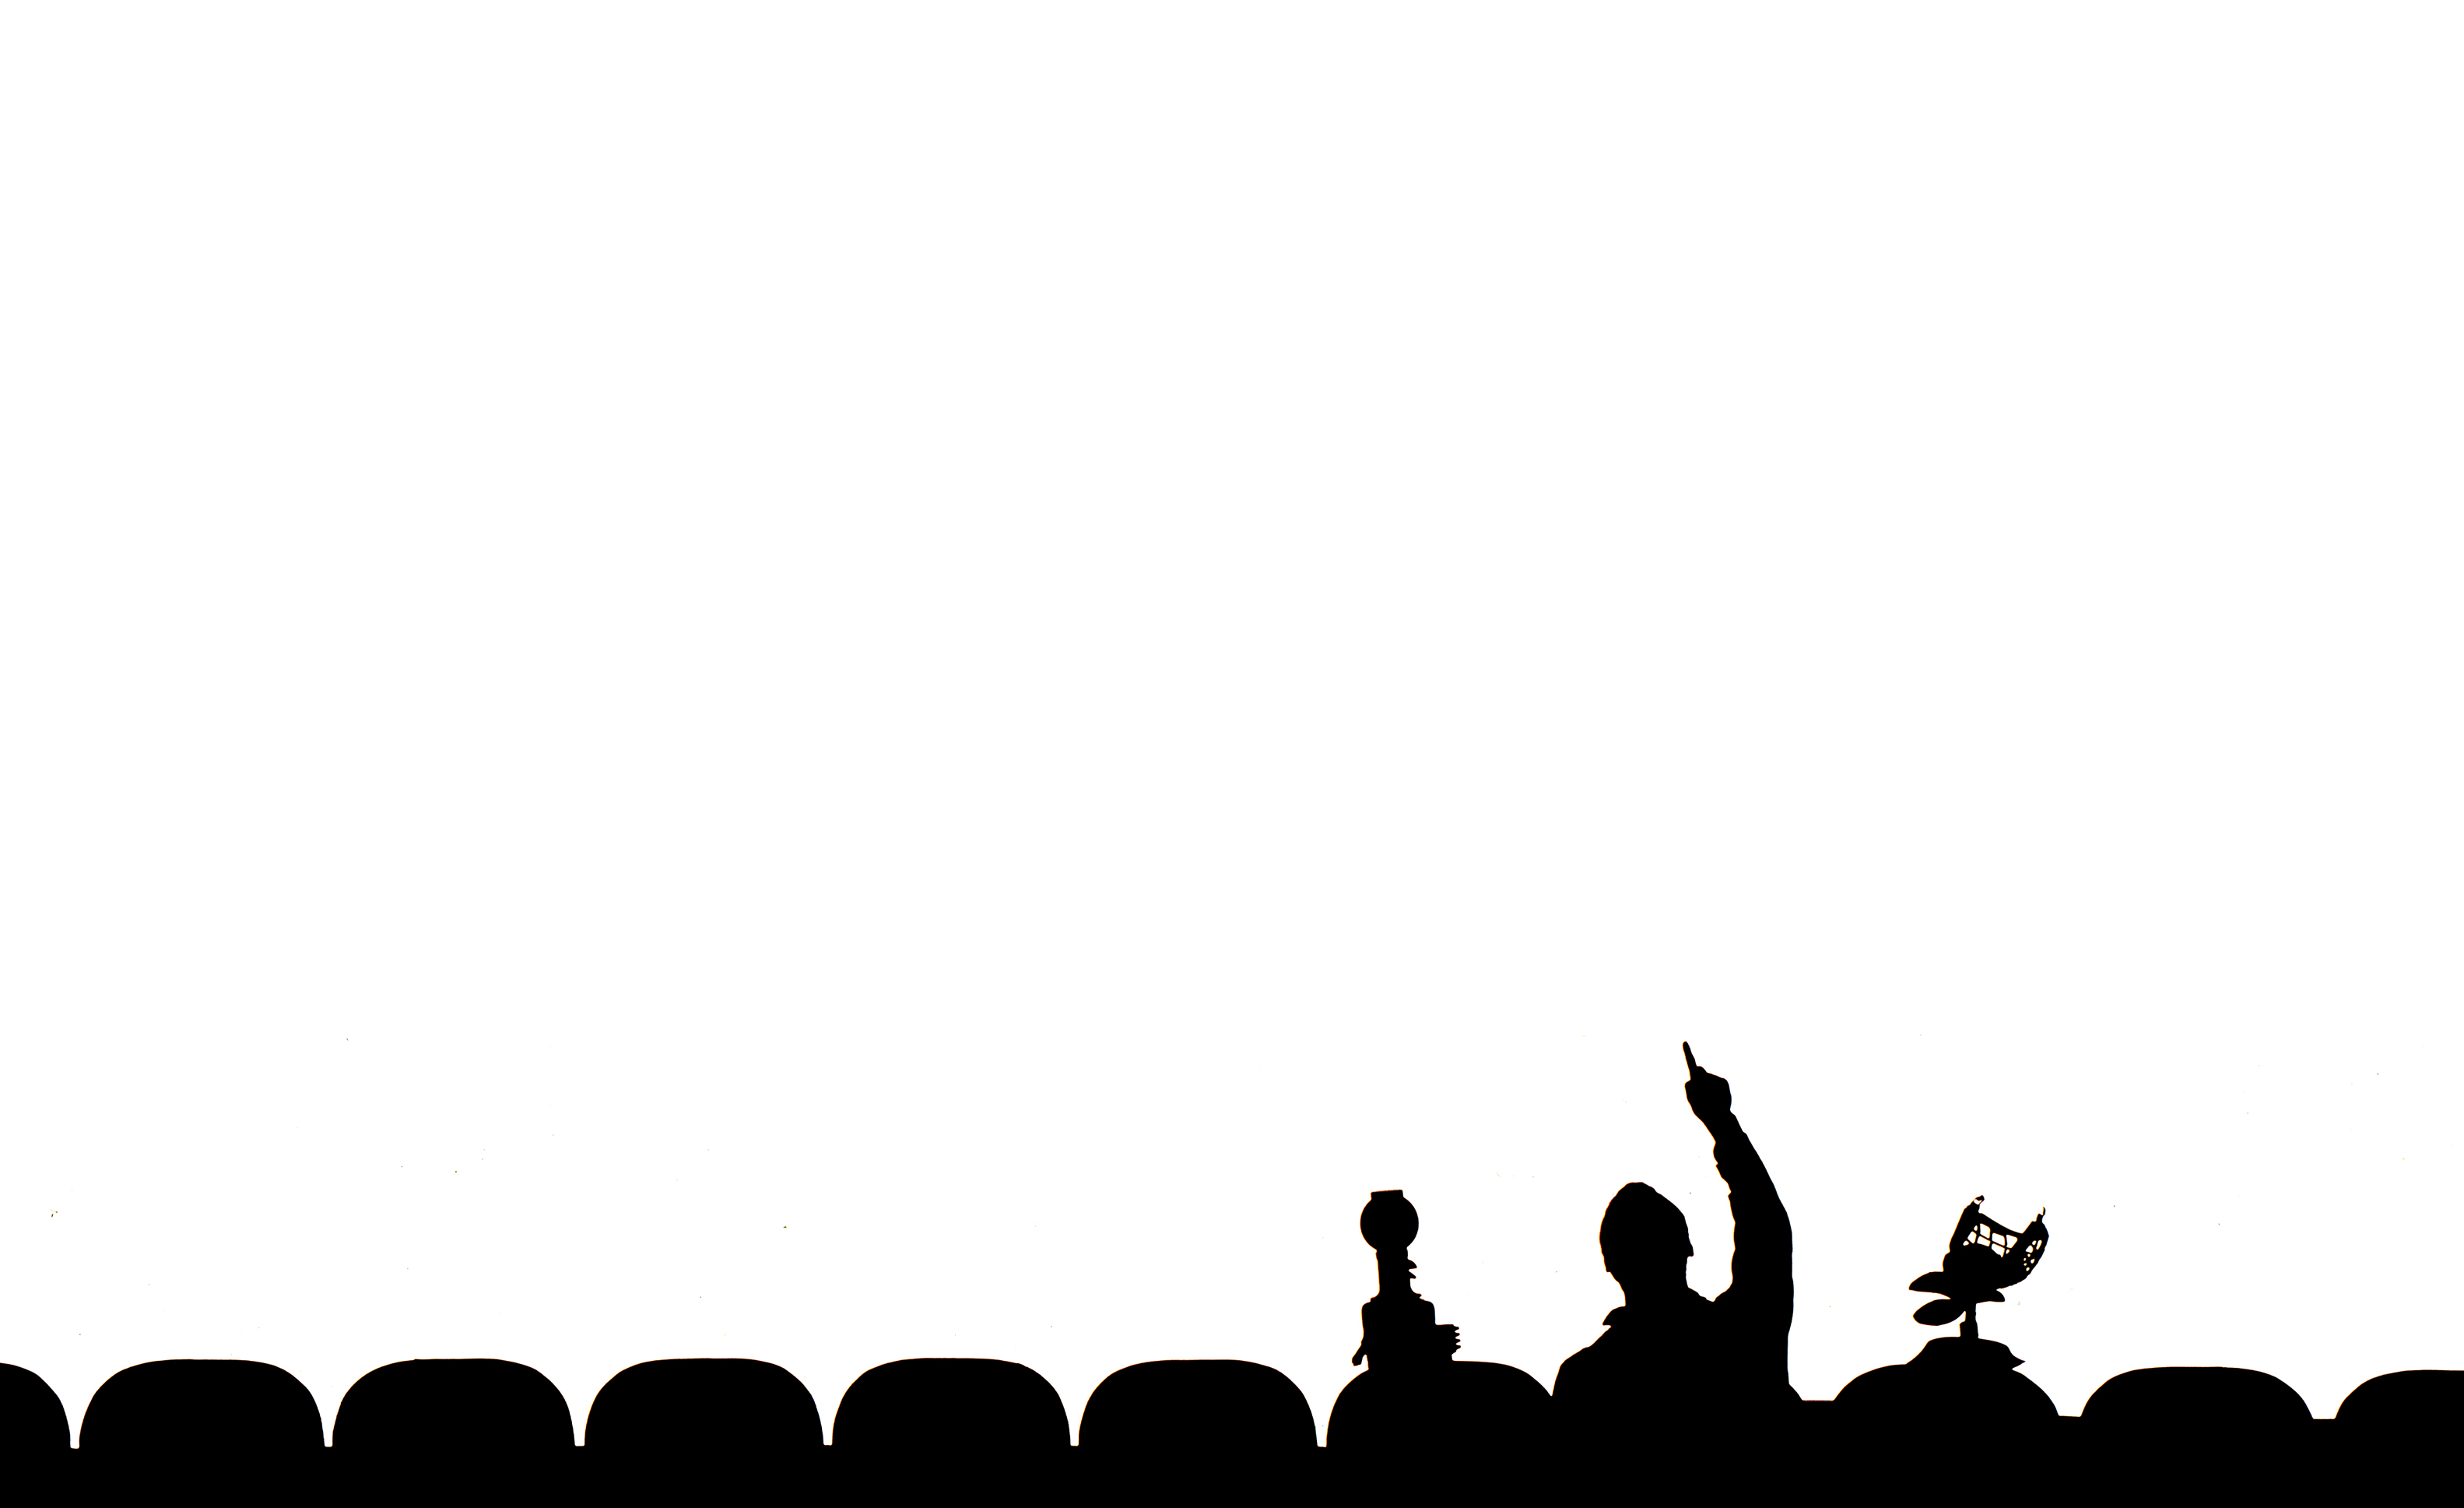 3166x1937 Mst3k Wallpaper Anyone Think Of The Possibilities